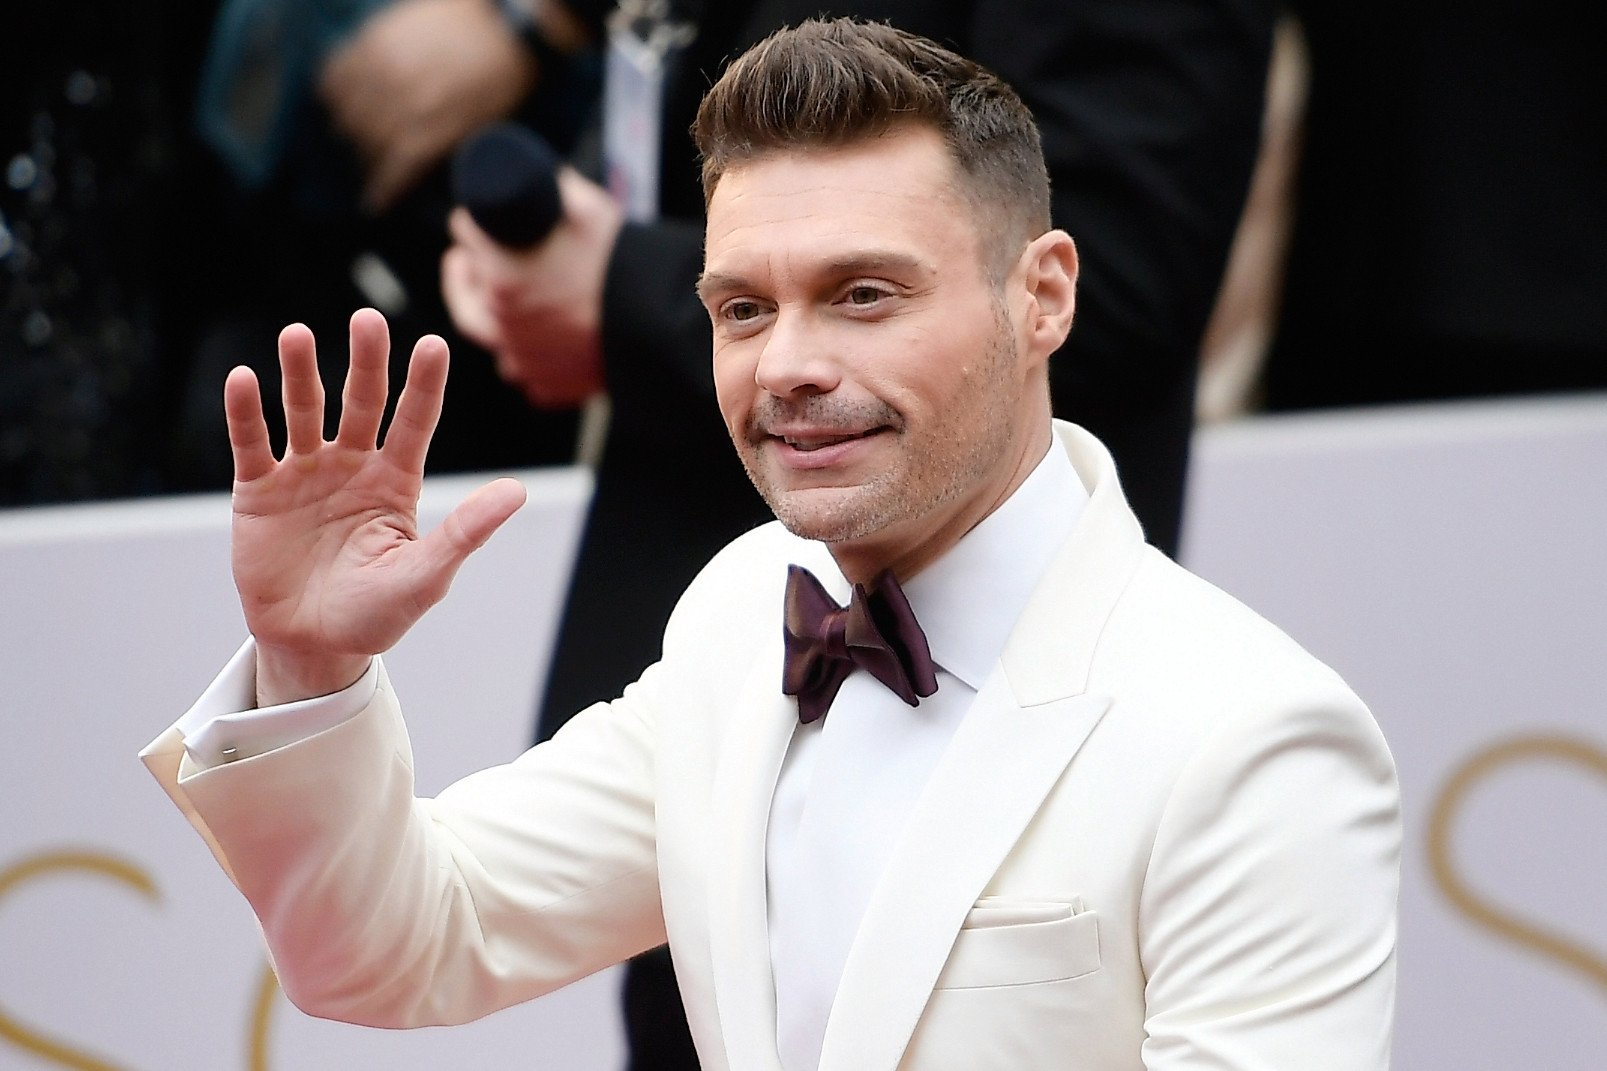 Seacrest will be walking into the lion's den at Oscars carpet